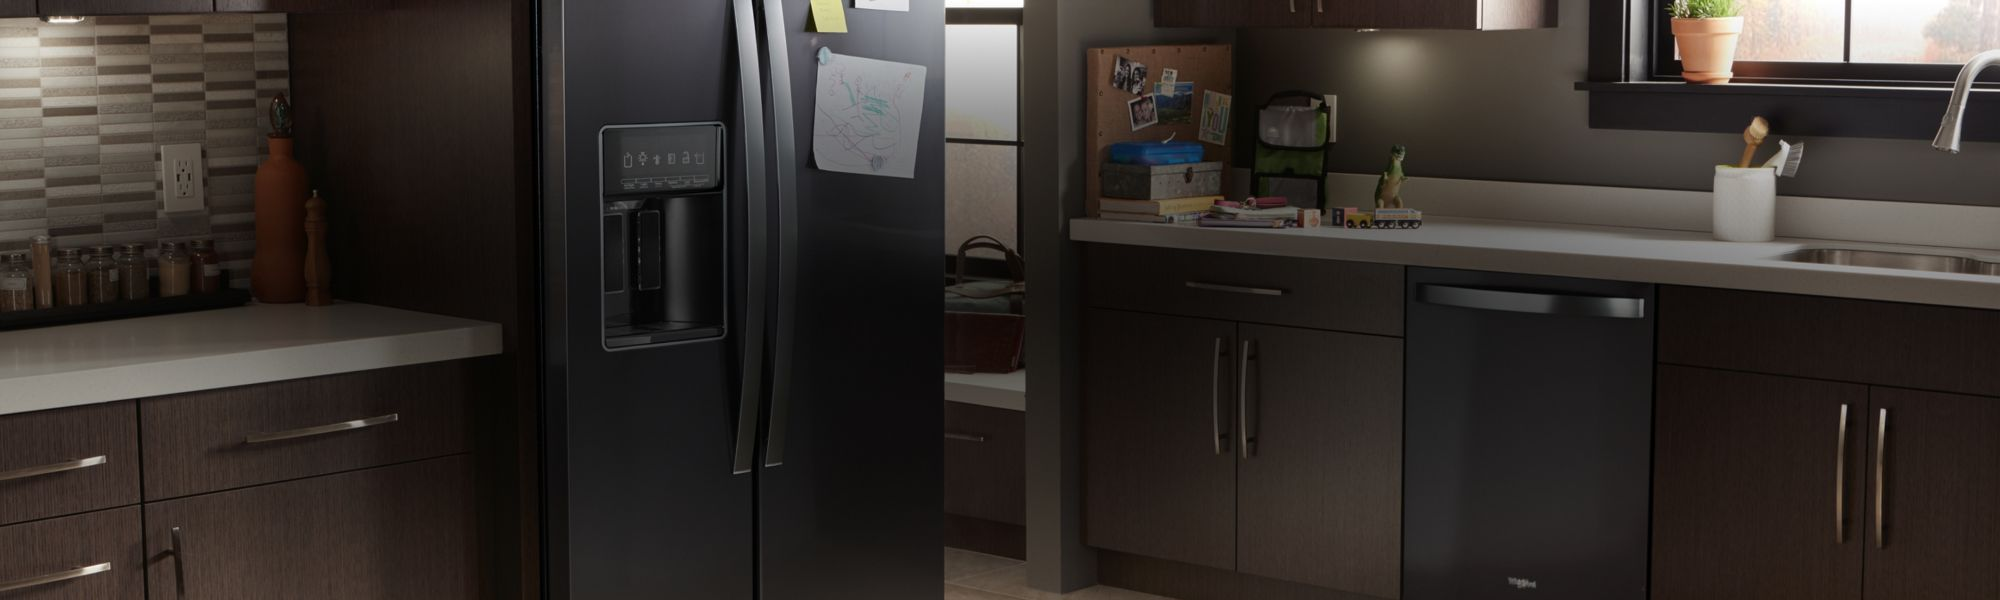 A Whirlpool® kitchen appliance suite featuring the low-profile microwave hood combination.